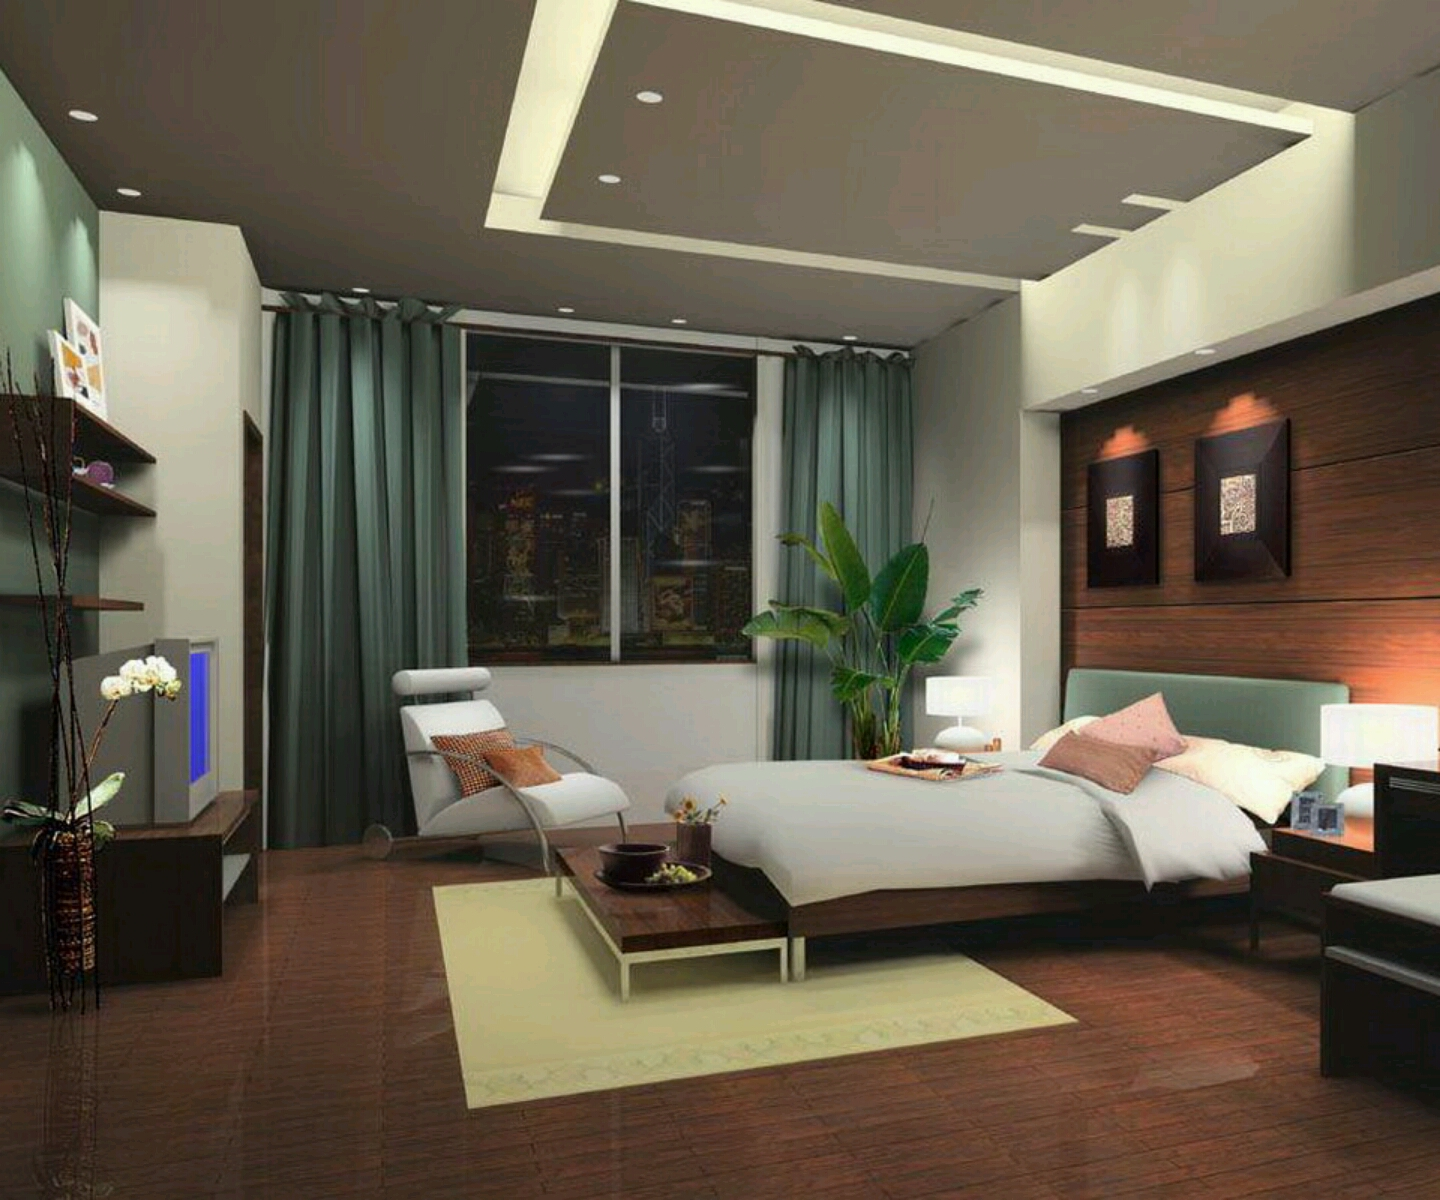 New home designs latest modern bedrooms designs best ideas for Photos of bedroom designs